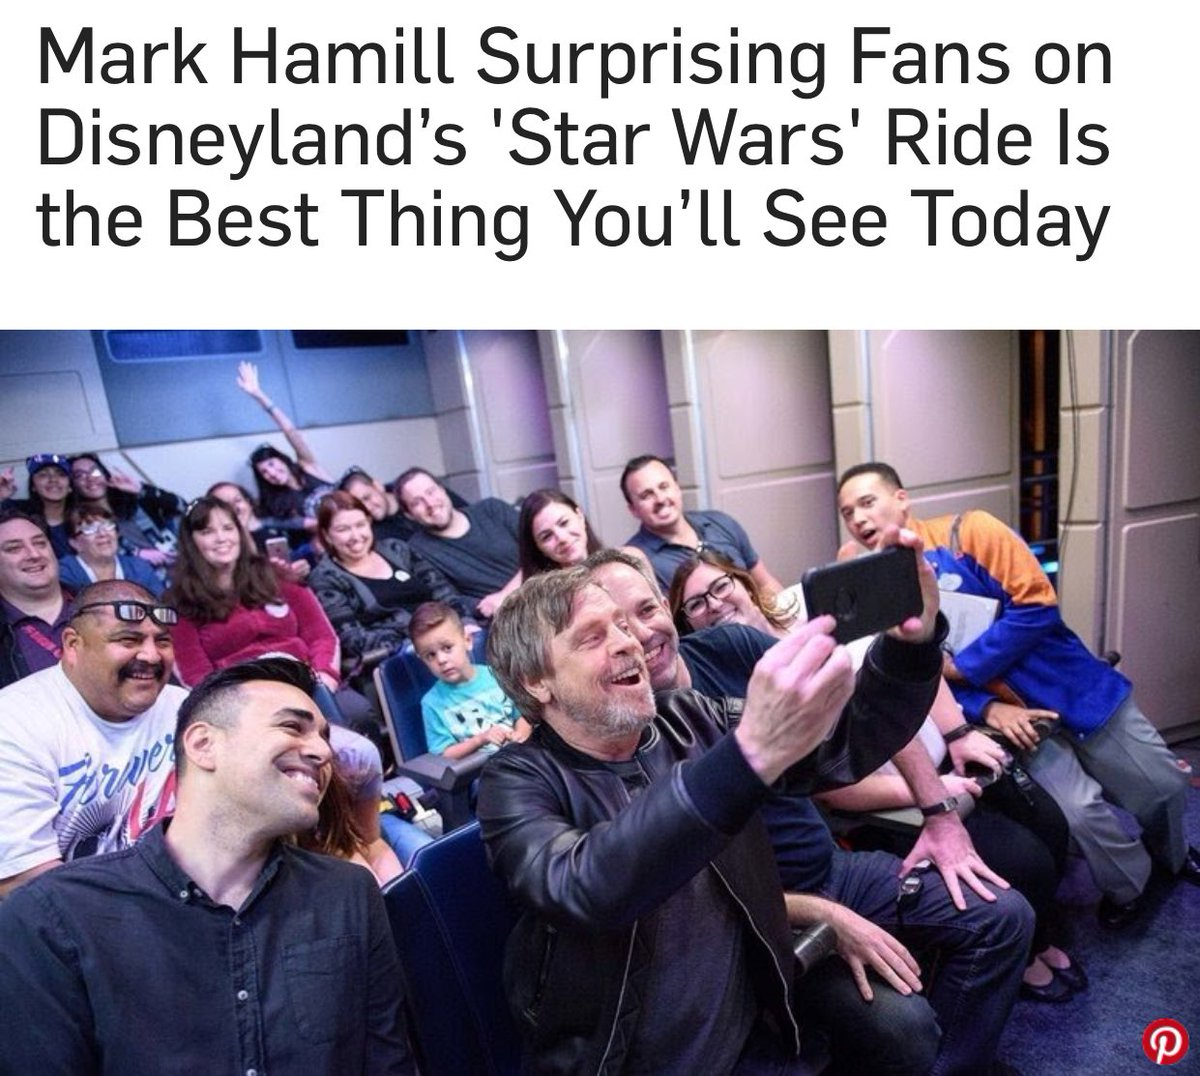 WHY #MarkHamill @HamillHimself IS THE COOLEST JEDI TO THE FANS EVER! RT IF YOU WISH YOU WERE THERE! #StarWars <br>http://pic.twitter.com/NAIjweq1xq